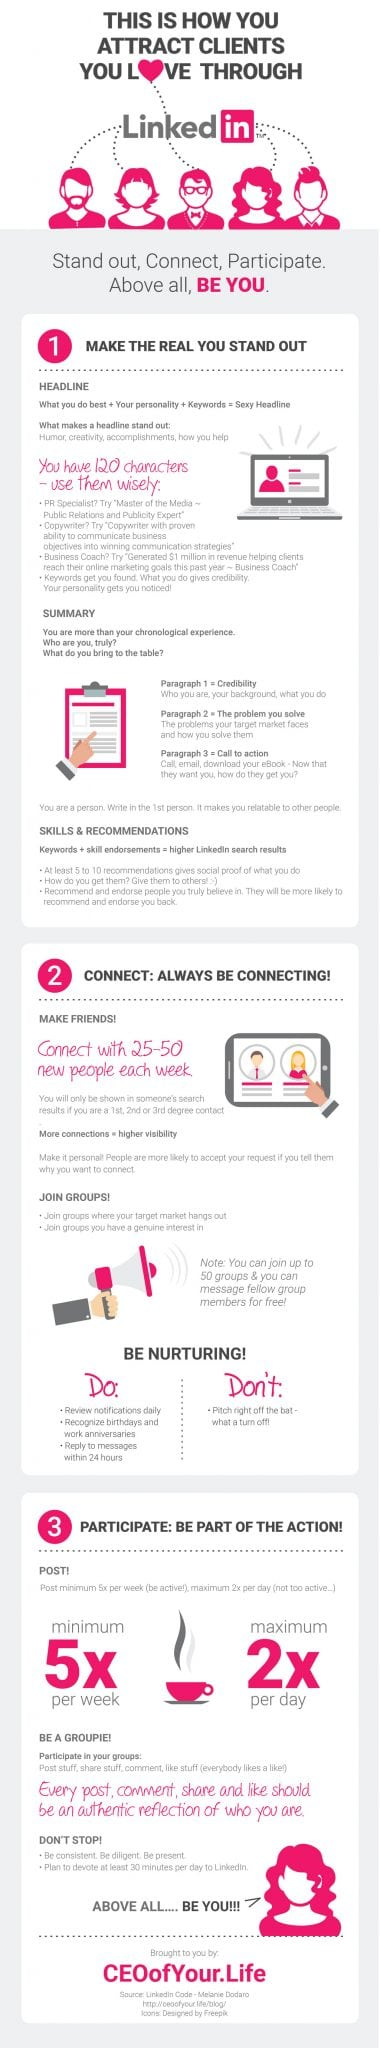 Photo of How to Clients You Love through Linkedin [INFOGRAPHIC]